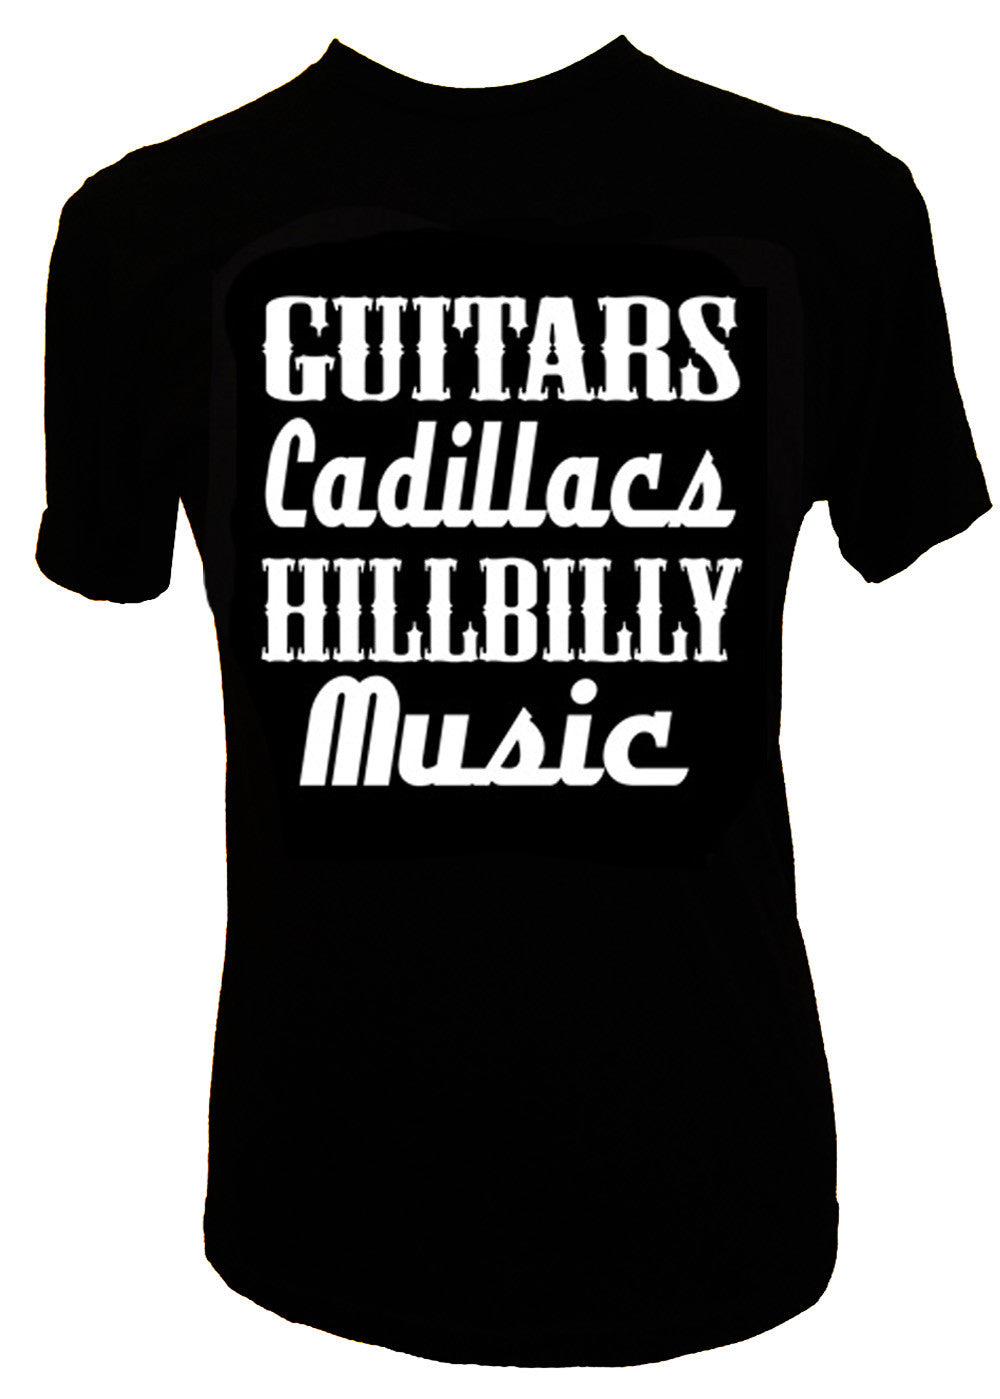 GUITARS CADILLACS HILLBILLY MUSIC MEN'S T-SHIRT